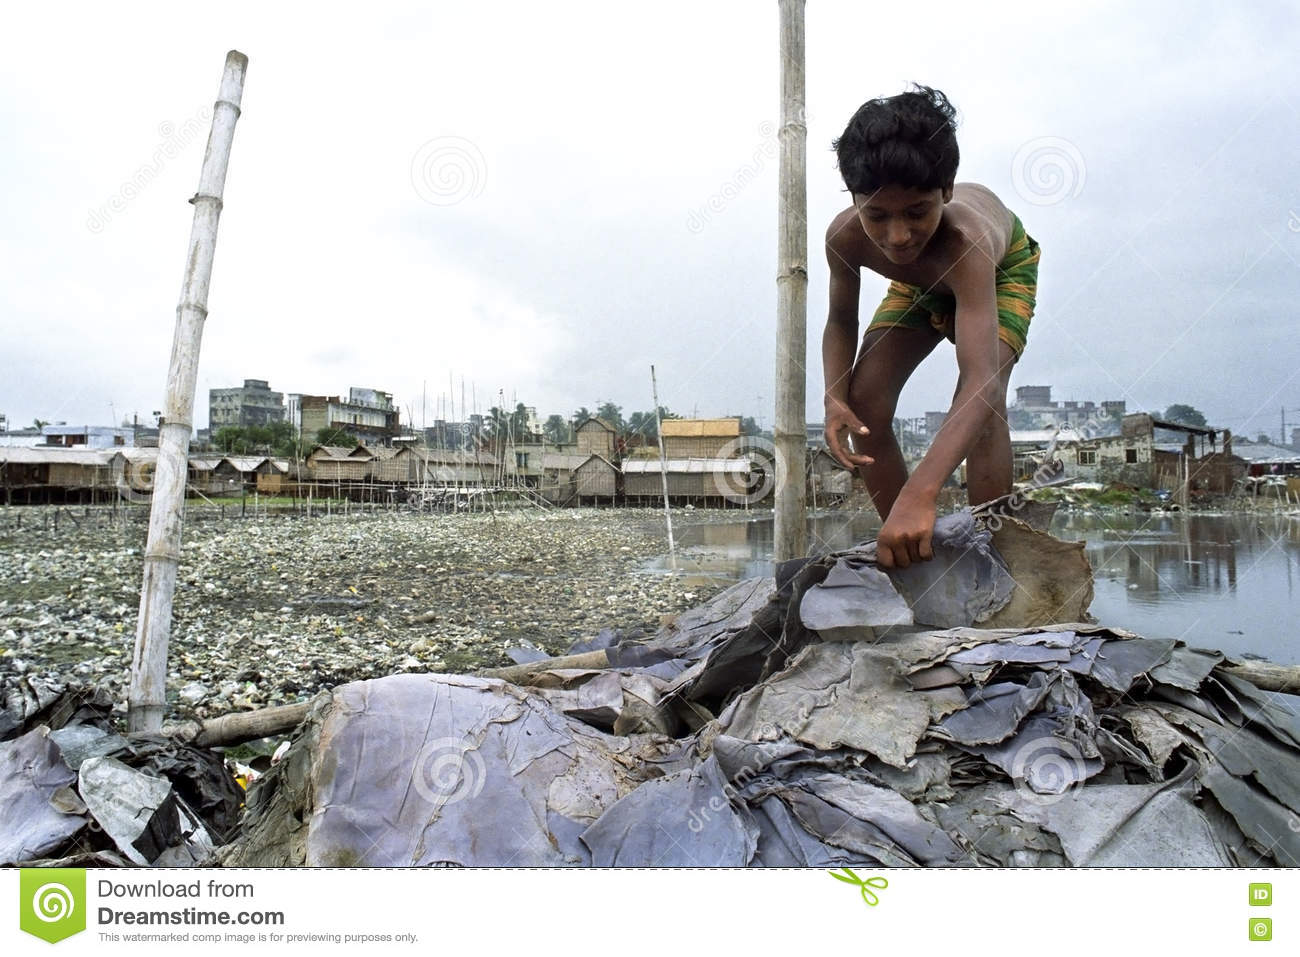 pollution in dhaka city essay Pollution in bangladesh essaysbangladesh is apparently now in the grip of all  sorts of pollution, like air pollution, soil pollution, water pollution and what not.